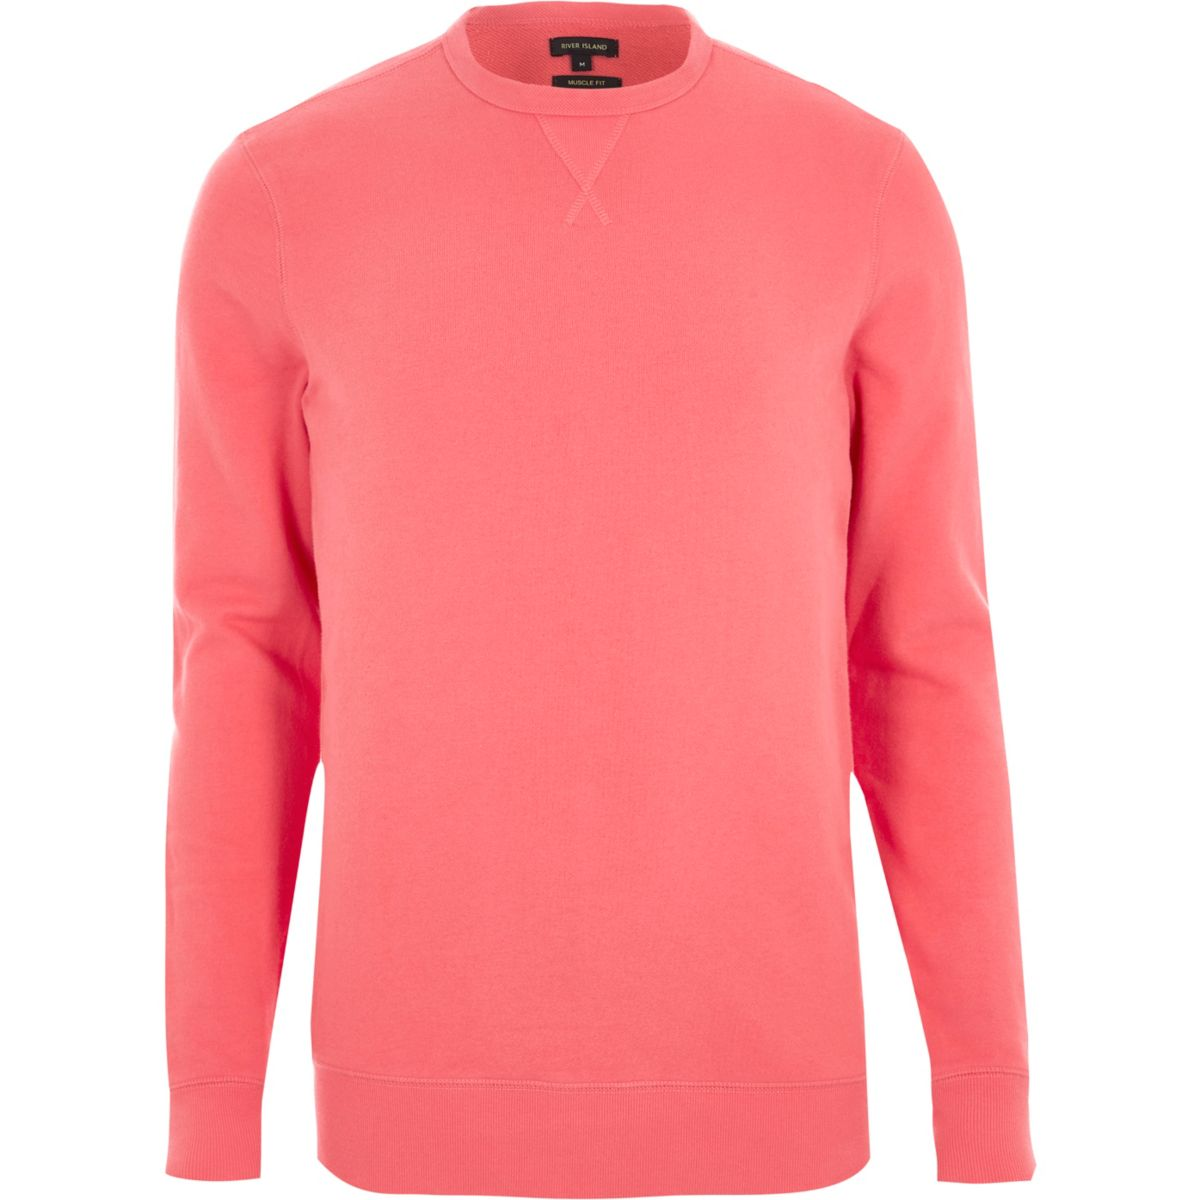 Coral muscle fit long sleeve sweatshirt